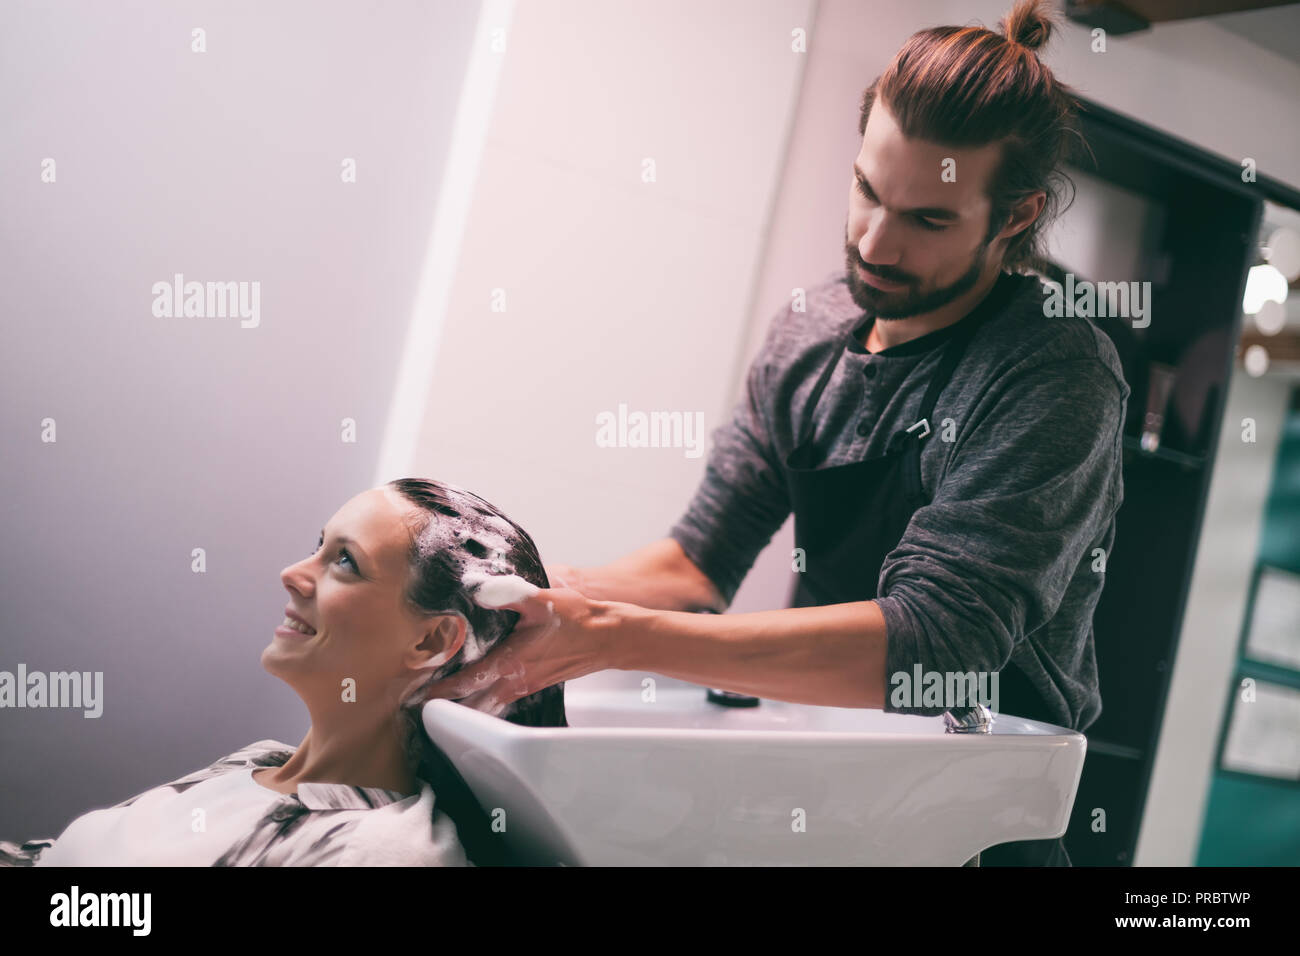 Young woman getting new hairstyle at professional hair styling saloon. Hairdresser is massaging her head. Stock Photo